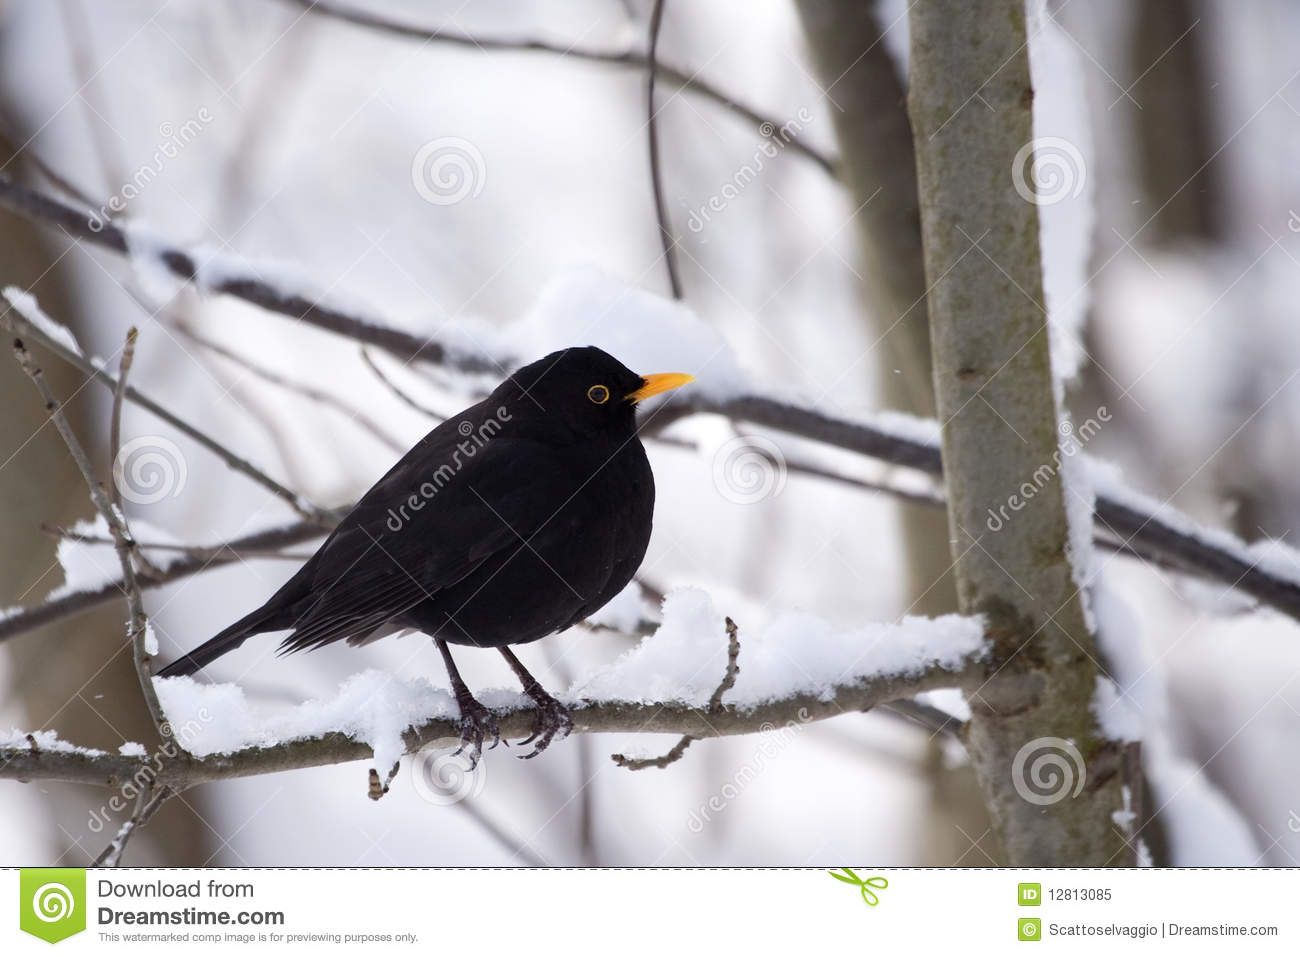 Male Common Blackbird (Turdus merula) on snow-covered branch. It is also called Eurasian Blackbird (especially in North America, to distinguish it from the unrelated New World blackbirds.